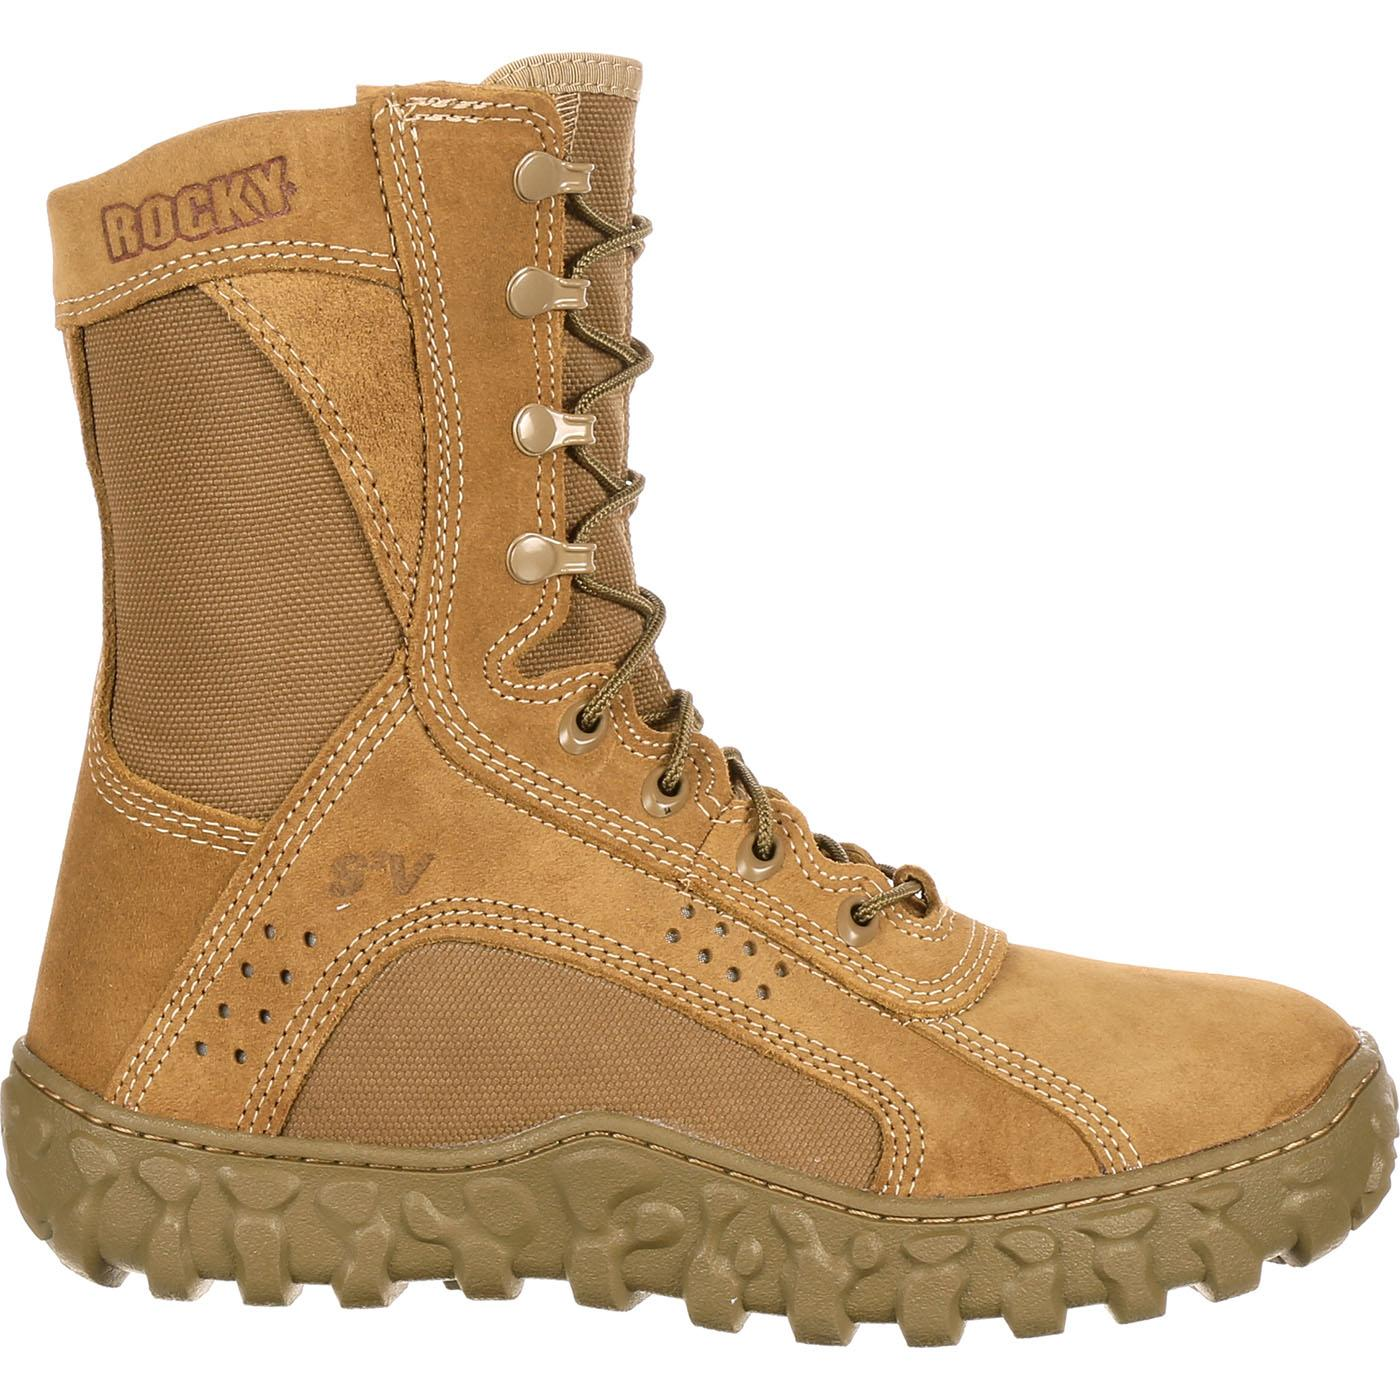 Rocky S2v Military Duty Boot Coyote Brown Fq0000104